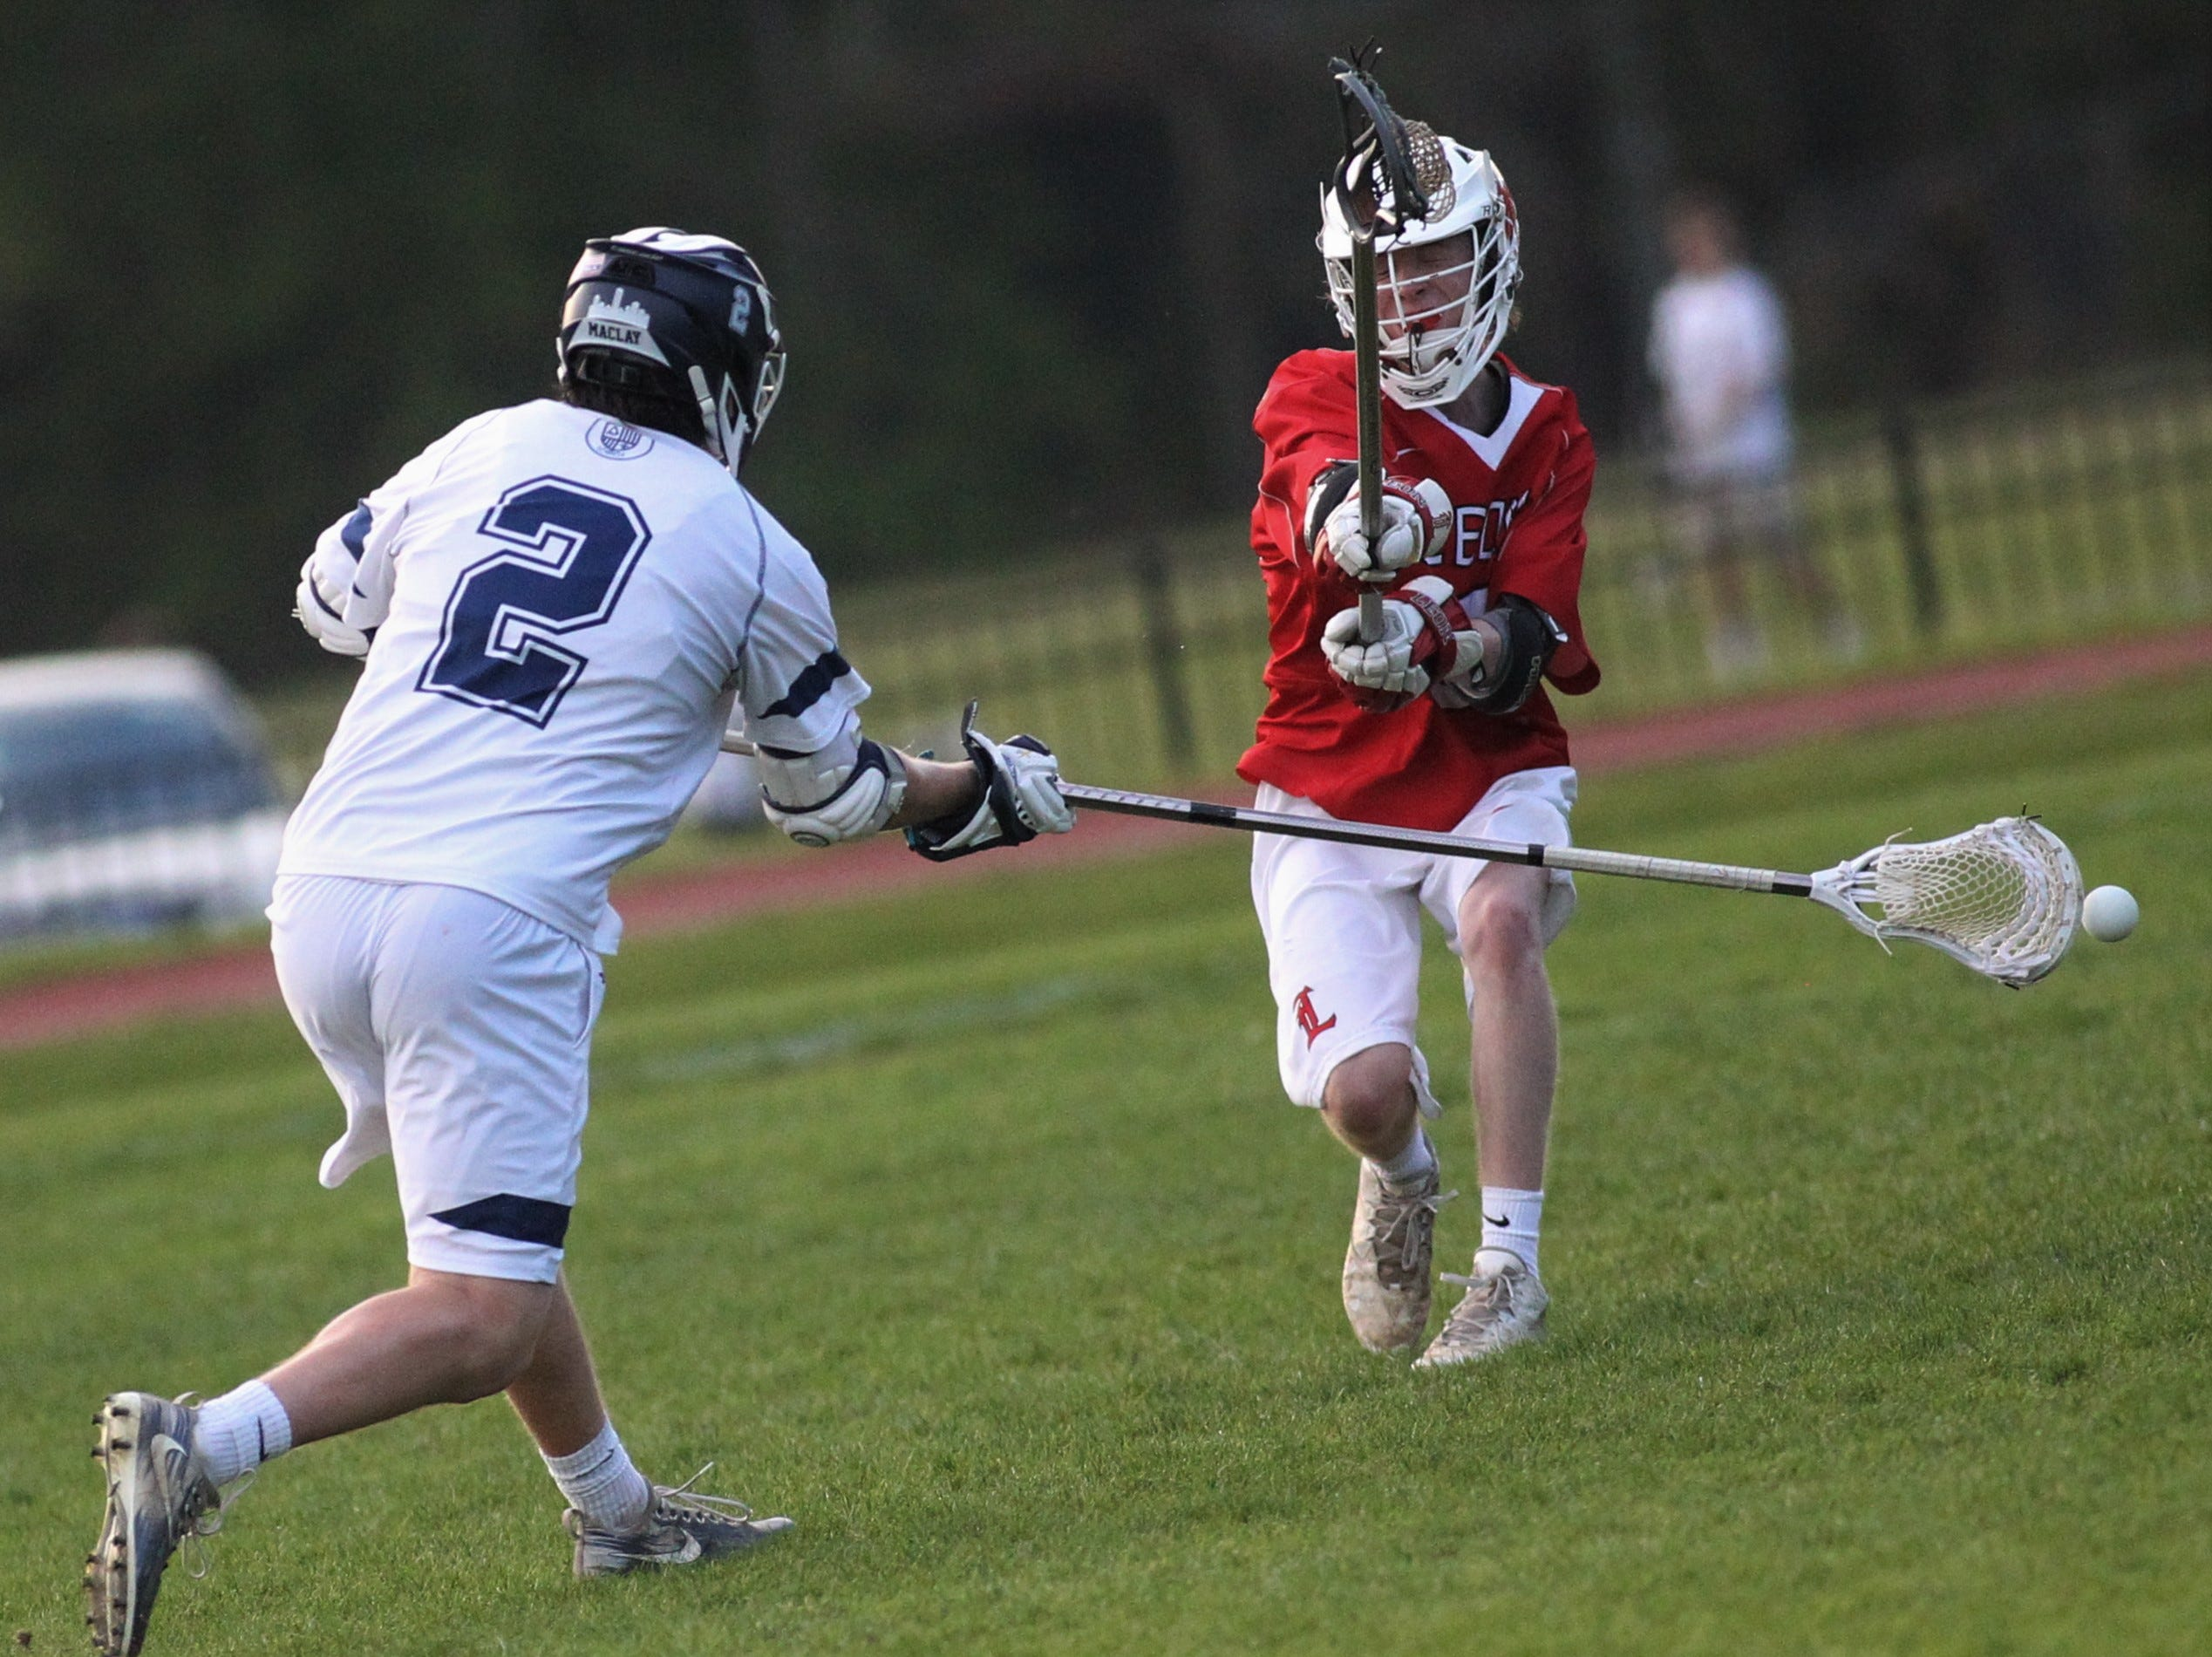 Maclay junior Sam Chase rips a shot for a goal with a long stick as the Marauders' lacrosse team beat Leon 15-5 on their annual Military Appreciation Night on March 12, 2019.